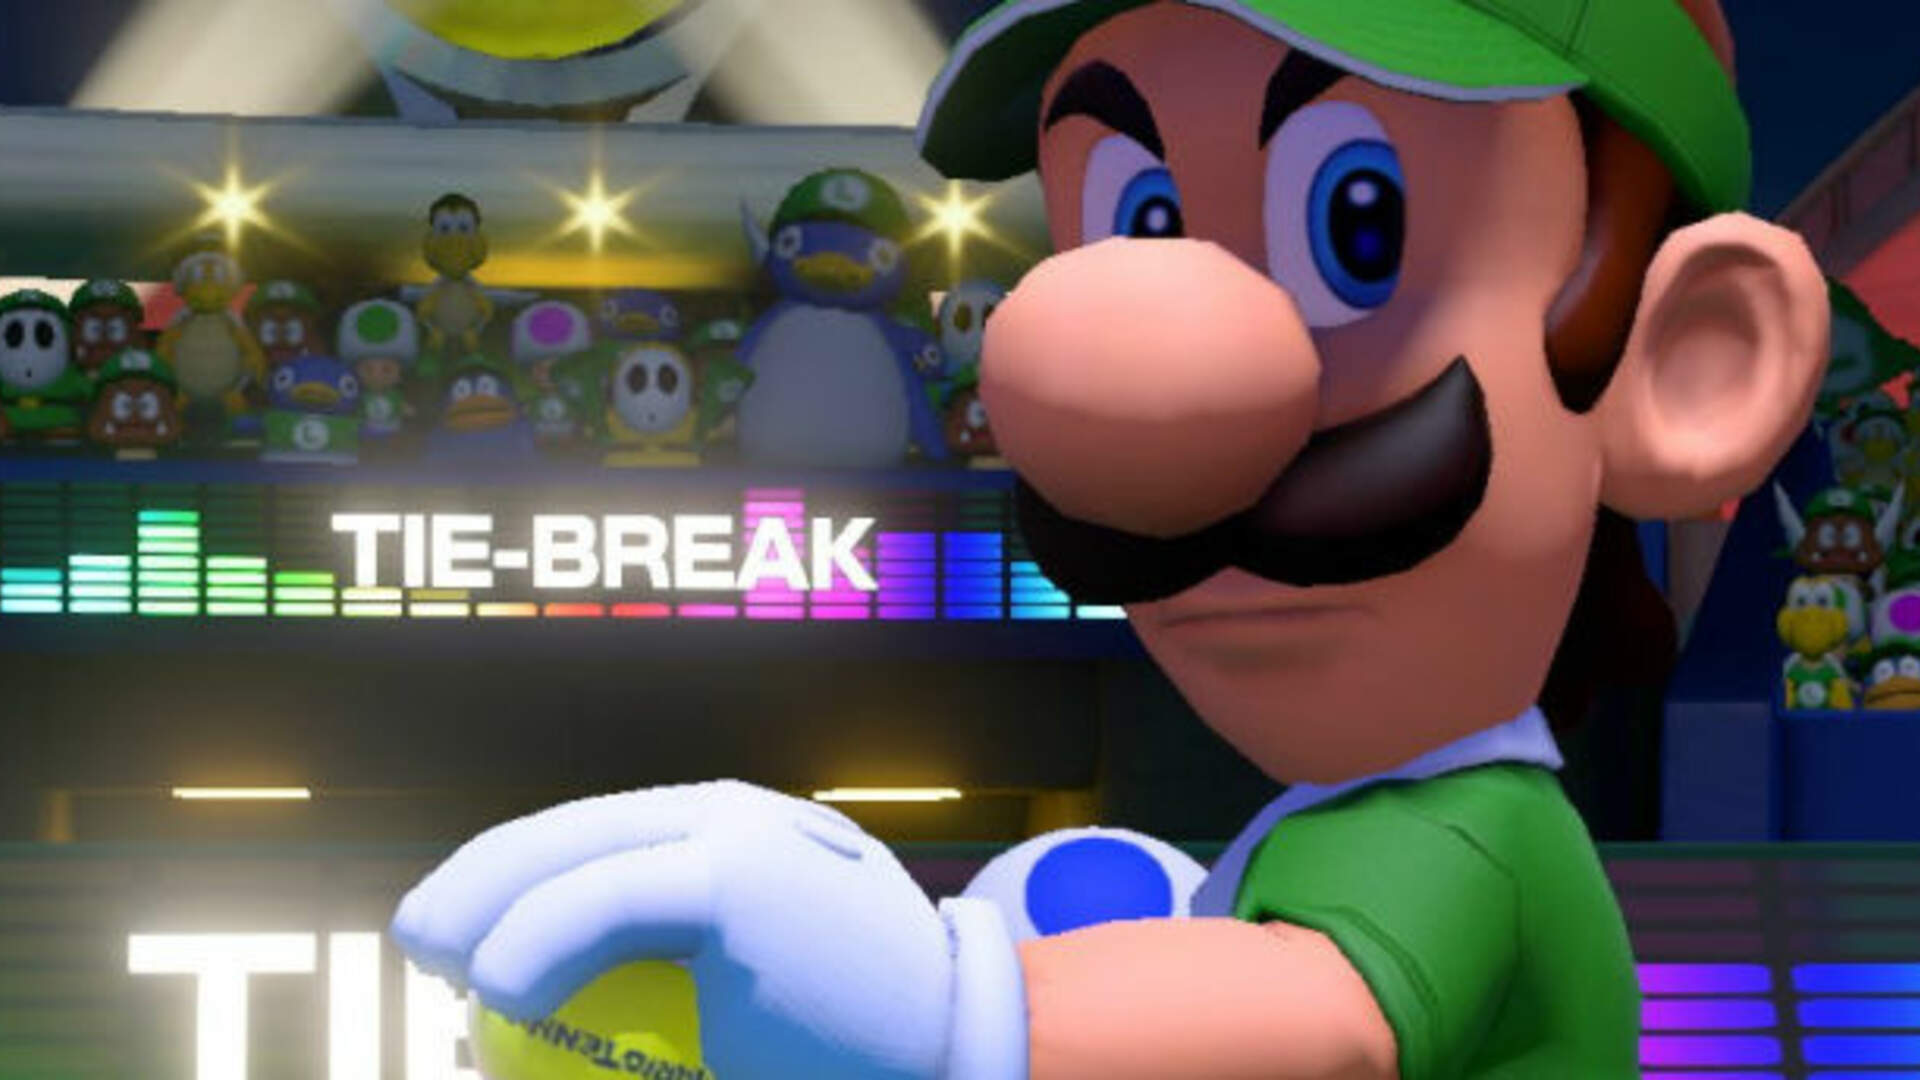 Nintendo Direct, March 8: Start Time and Which Games to Expect [Watch it Here!]